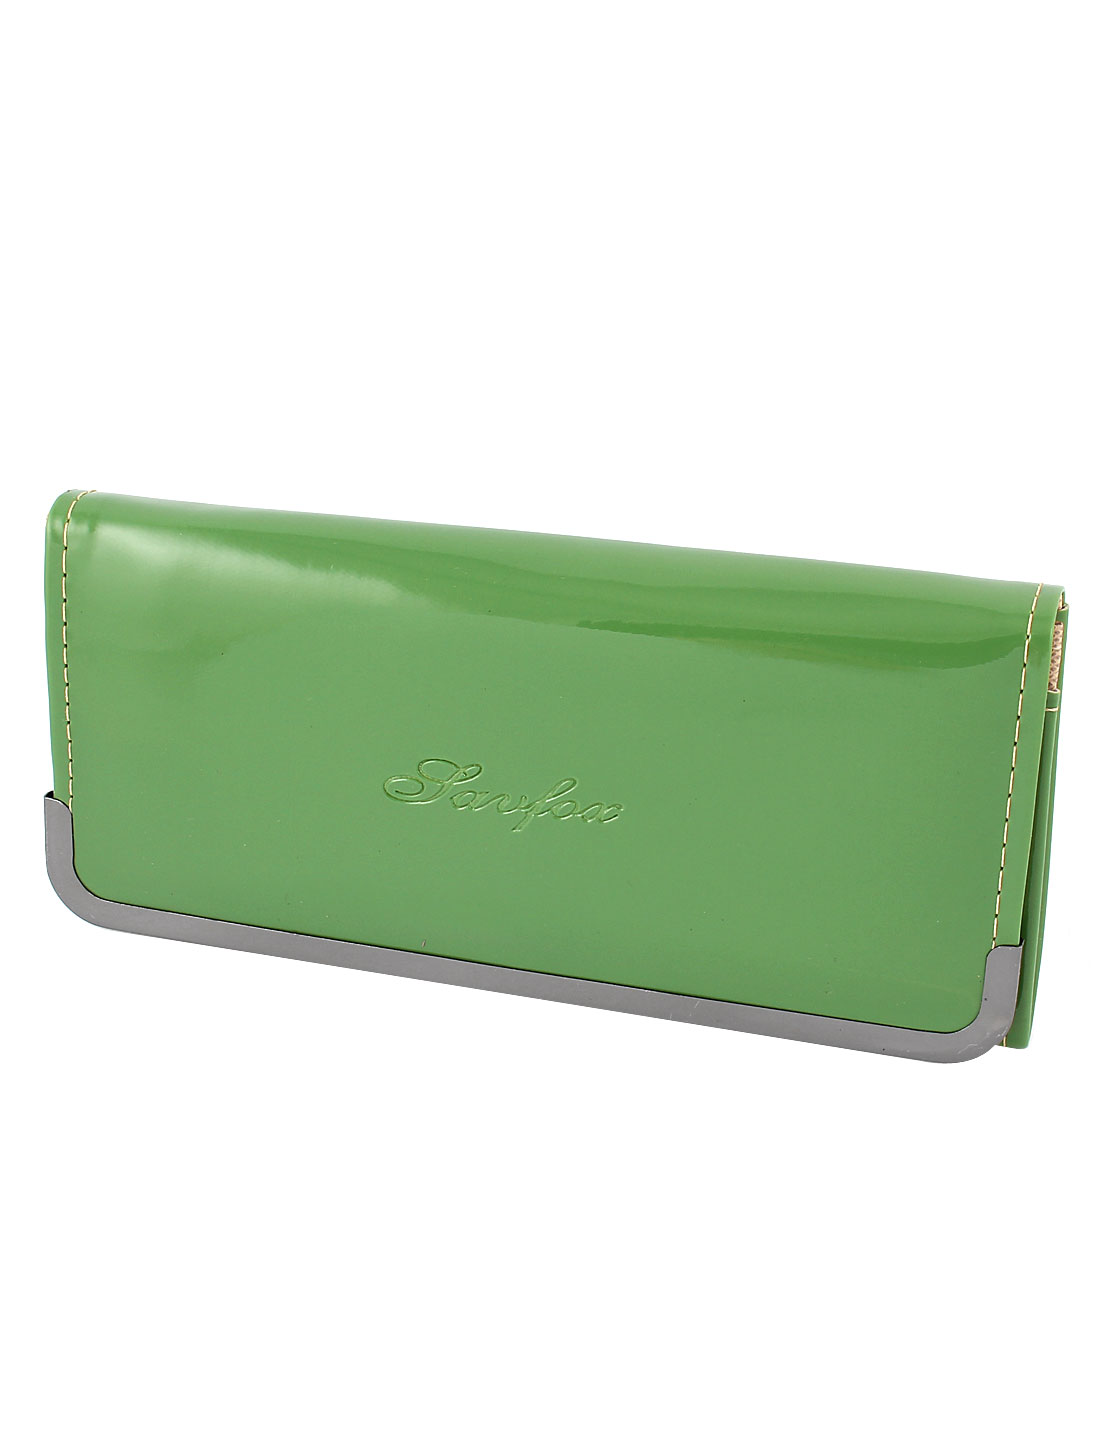 Lady Green Patent Leather 4 Layers Button Closure Inner Zipper Wallet Purse